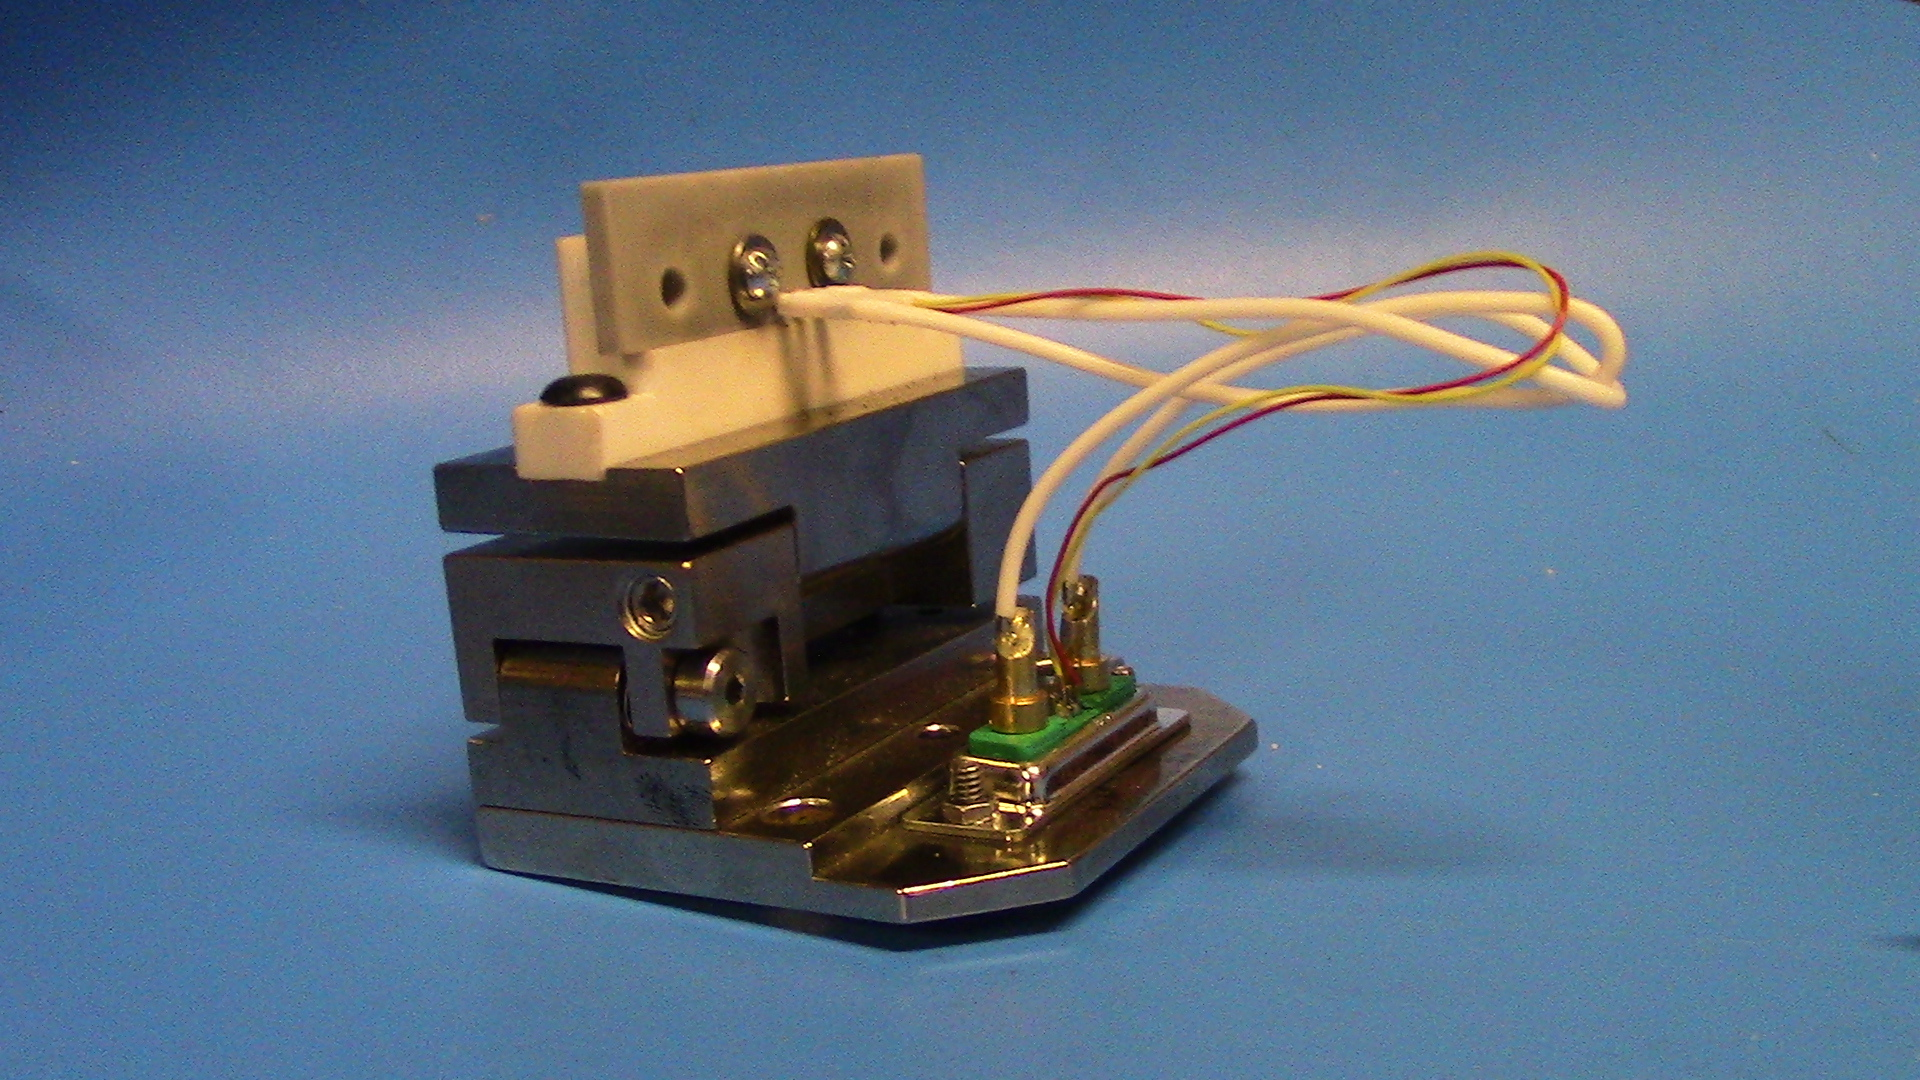 Image of Microjoin AM-50 hotbar mount